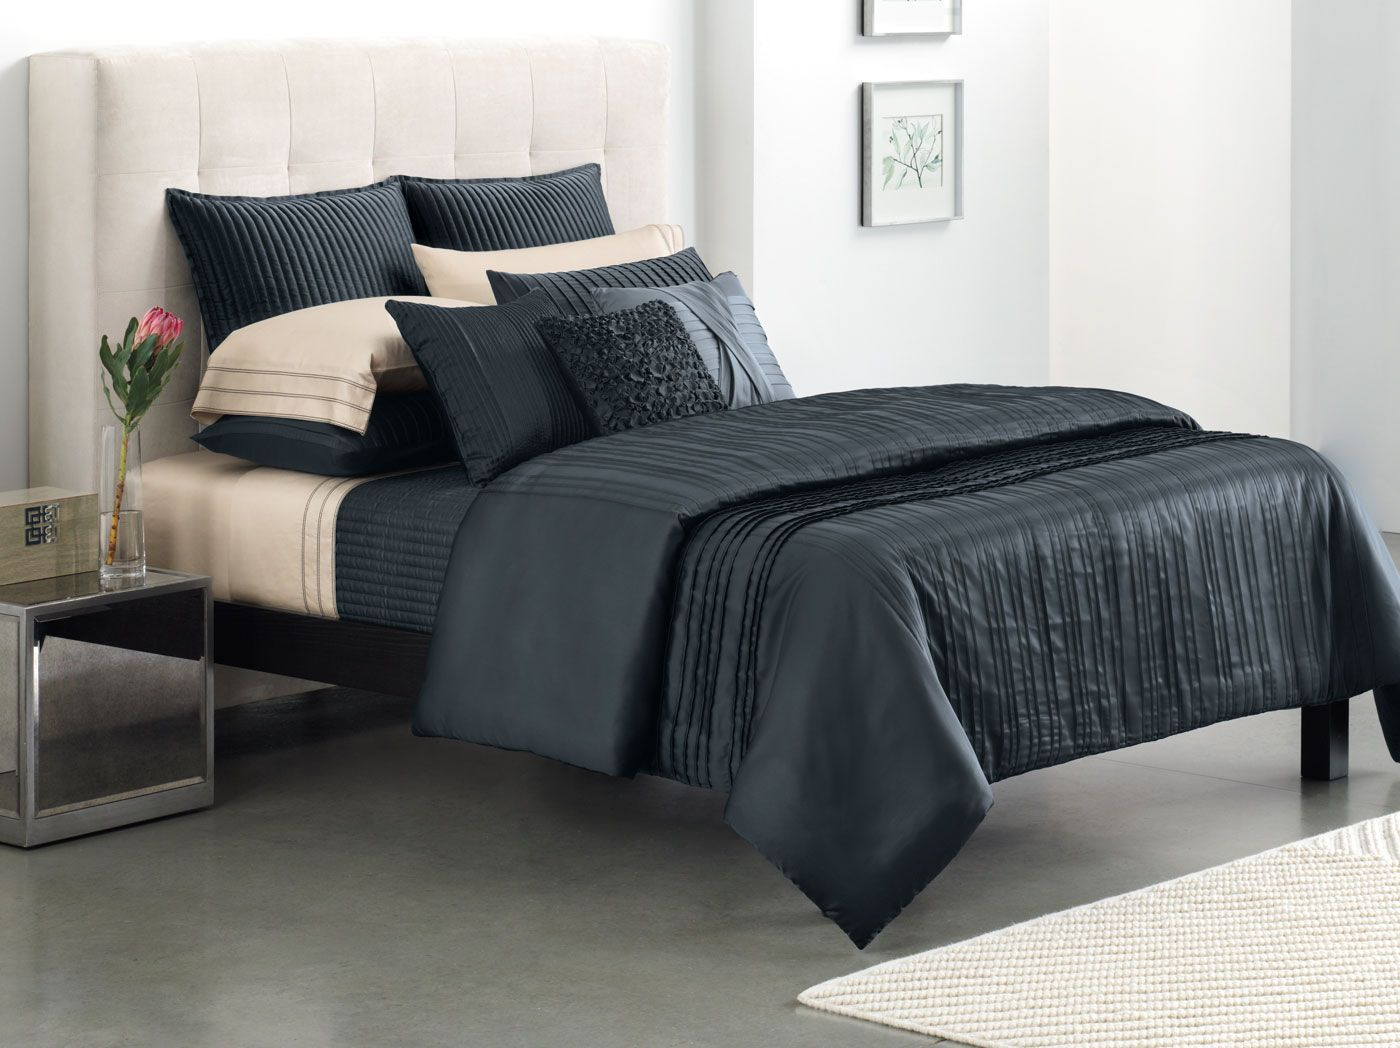 b631fa9d2ba Simply Vera Home for Kohls I usually don't like black in a room but this  look very elegant